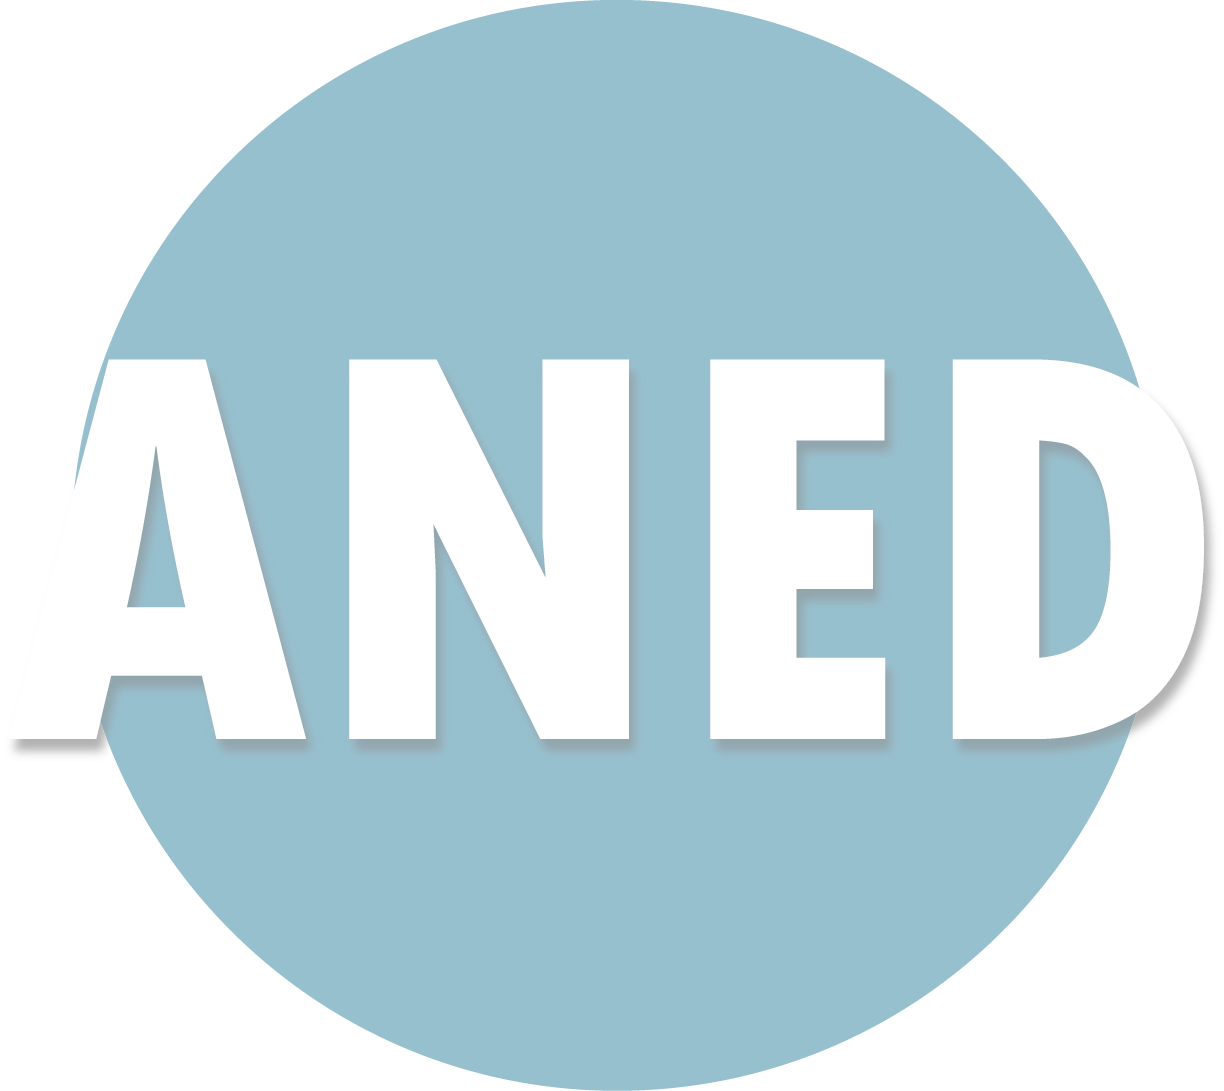 The ANED logo